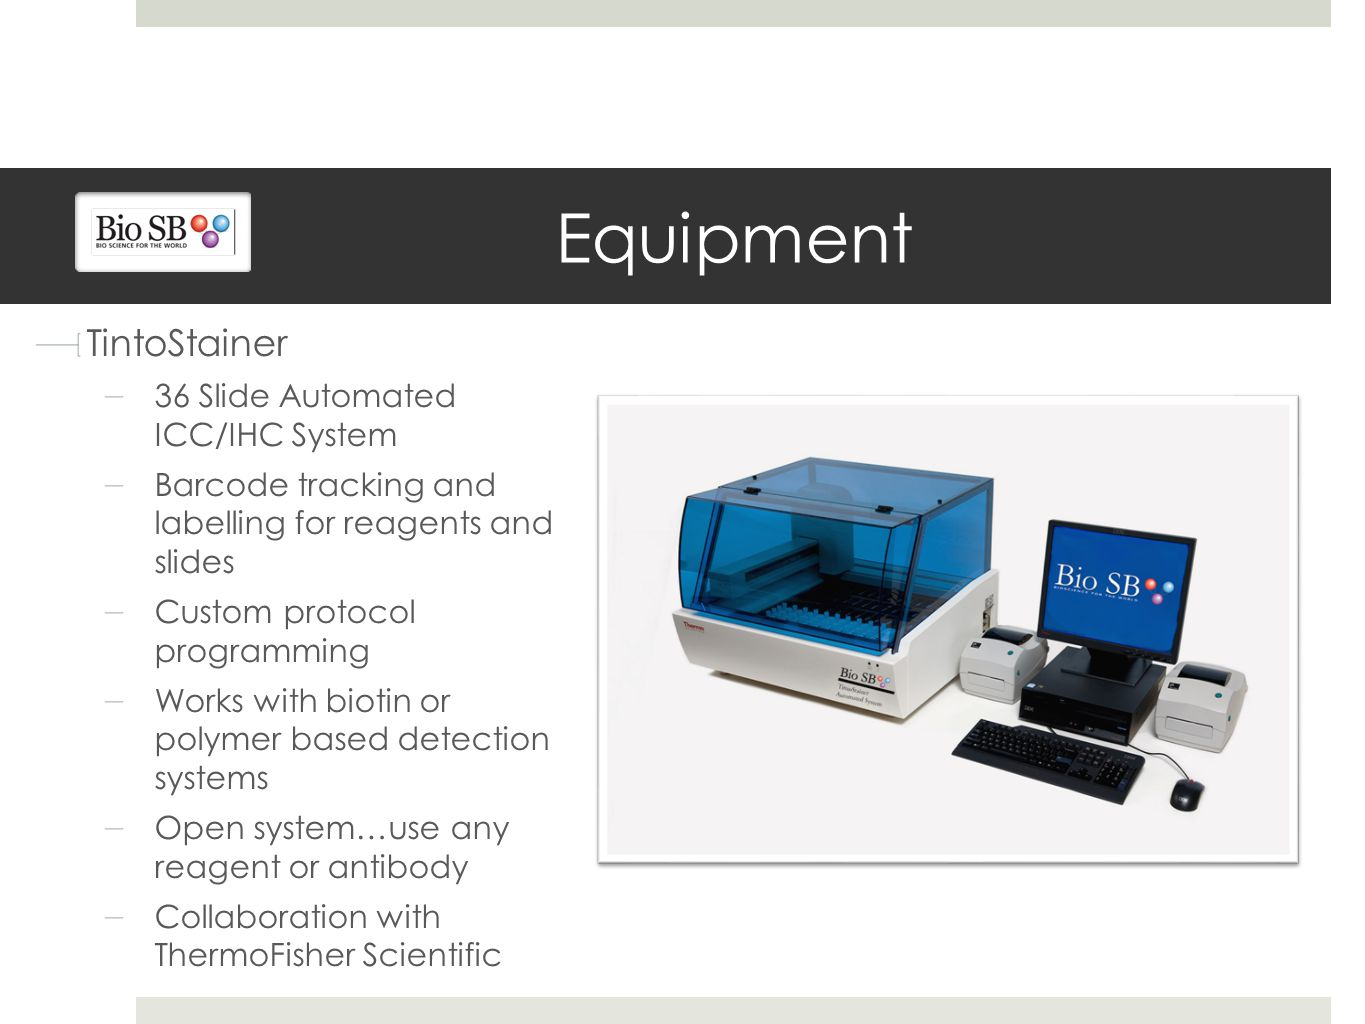 Equipment TintoStainer 36 Slide Automated ICC/IHC System Barcode tracking and labelling for reagents and slides Custom protocol programming Works with biotin or polymer based detection systems Open system…use any reagent or antibody Collaboration with ThermoFisher Scientific